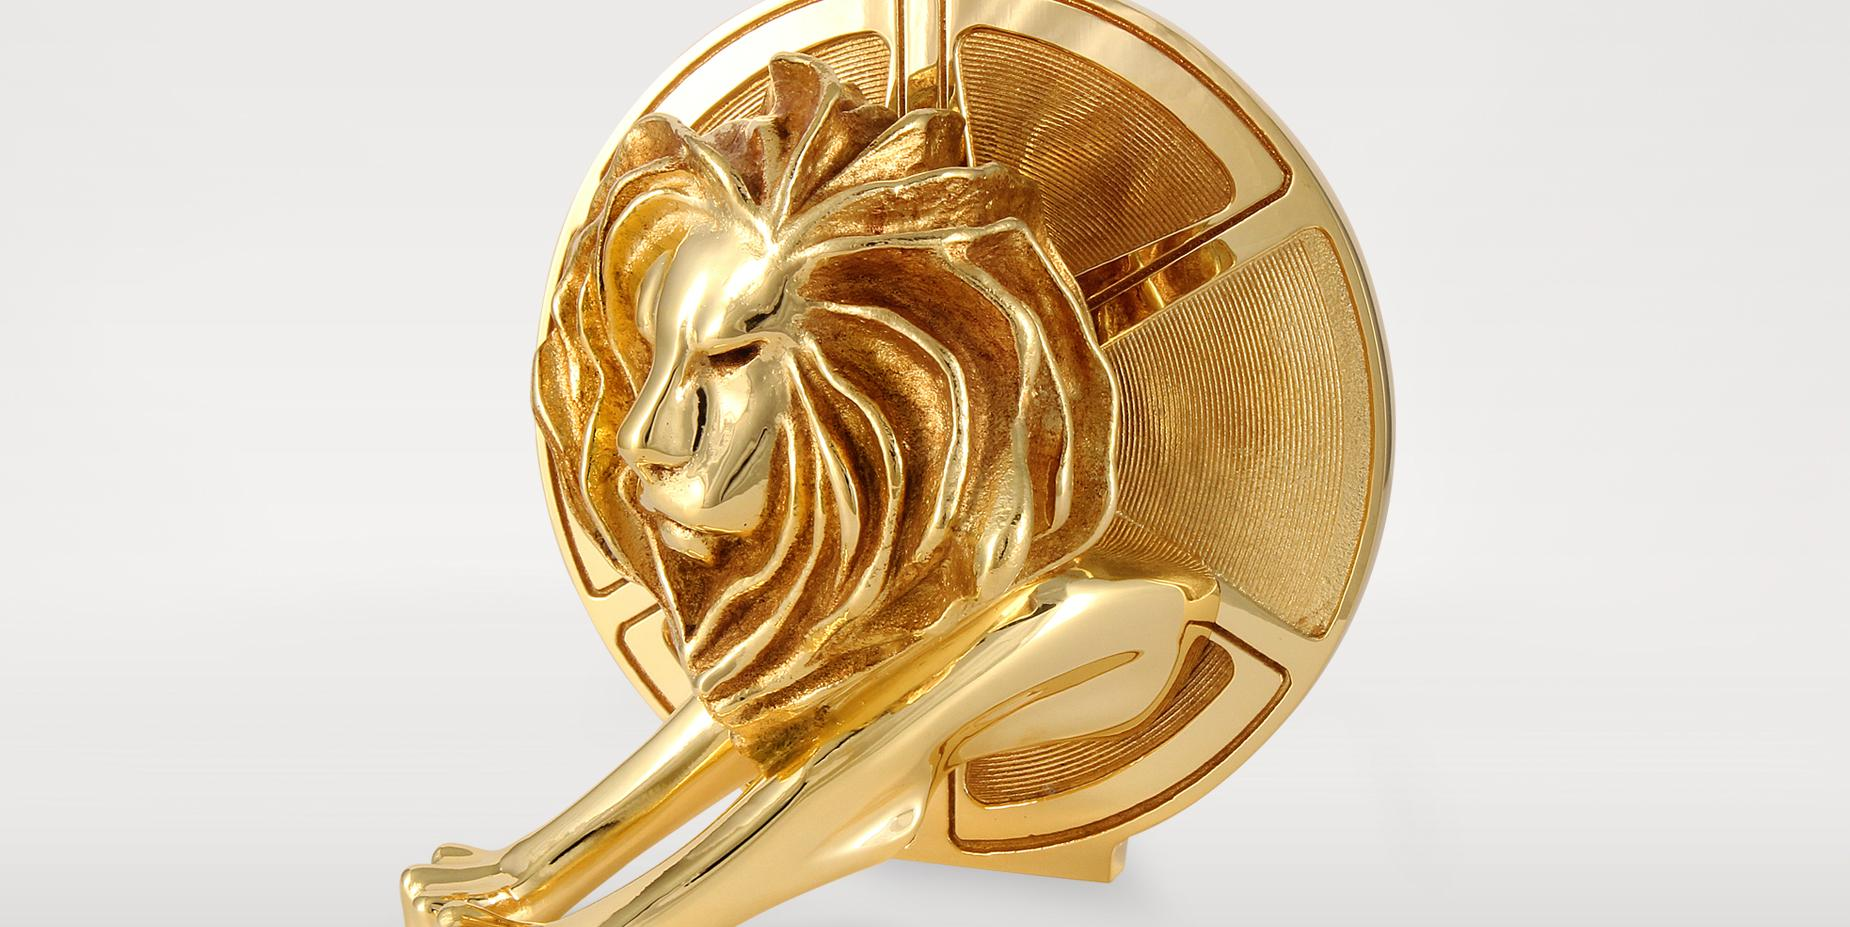 Women will now be 31.5% of Cannes Lions judges, up from 20% two years ago http://t.co/LJkOZhs6JP http://t.co/RvZRBkBn2z